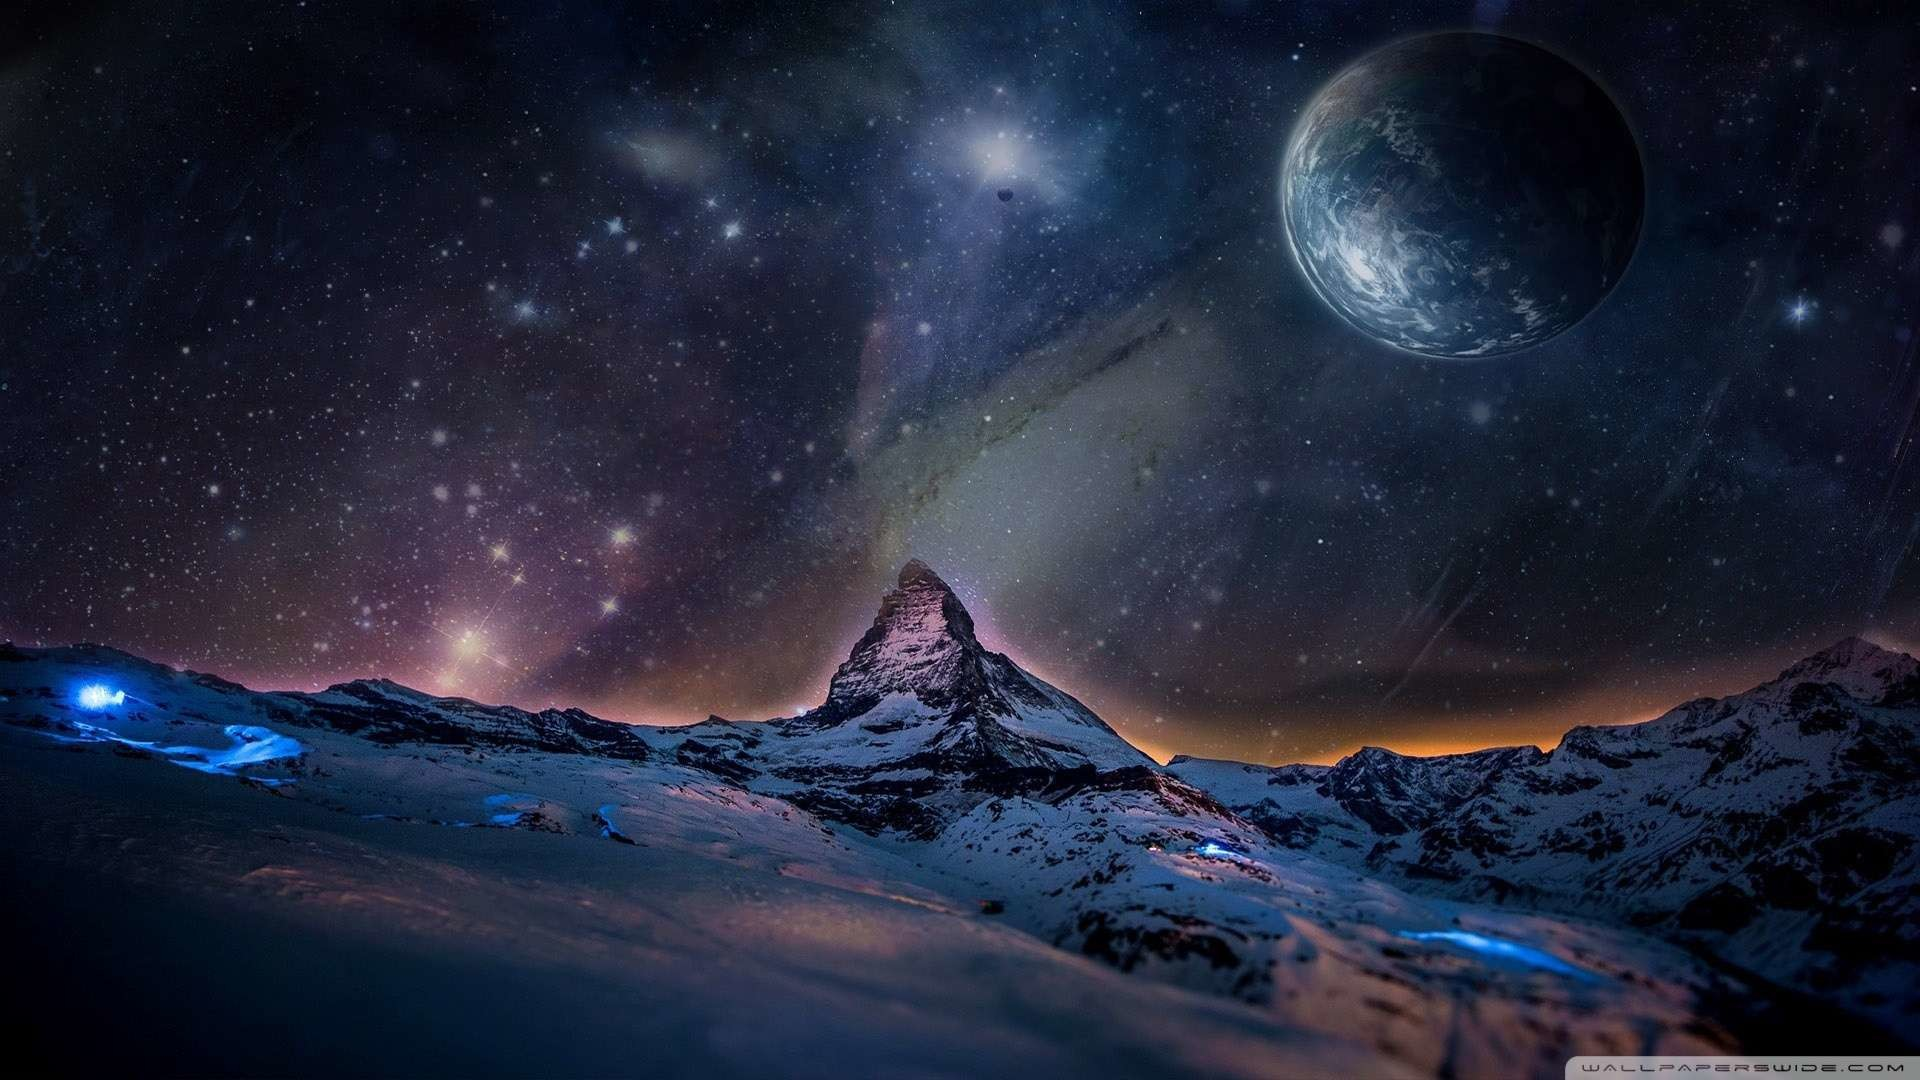 1080p space wallpaper 72 images - Space wallpaper desktop ...